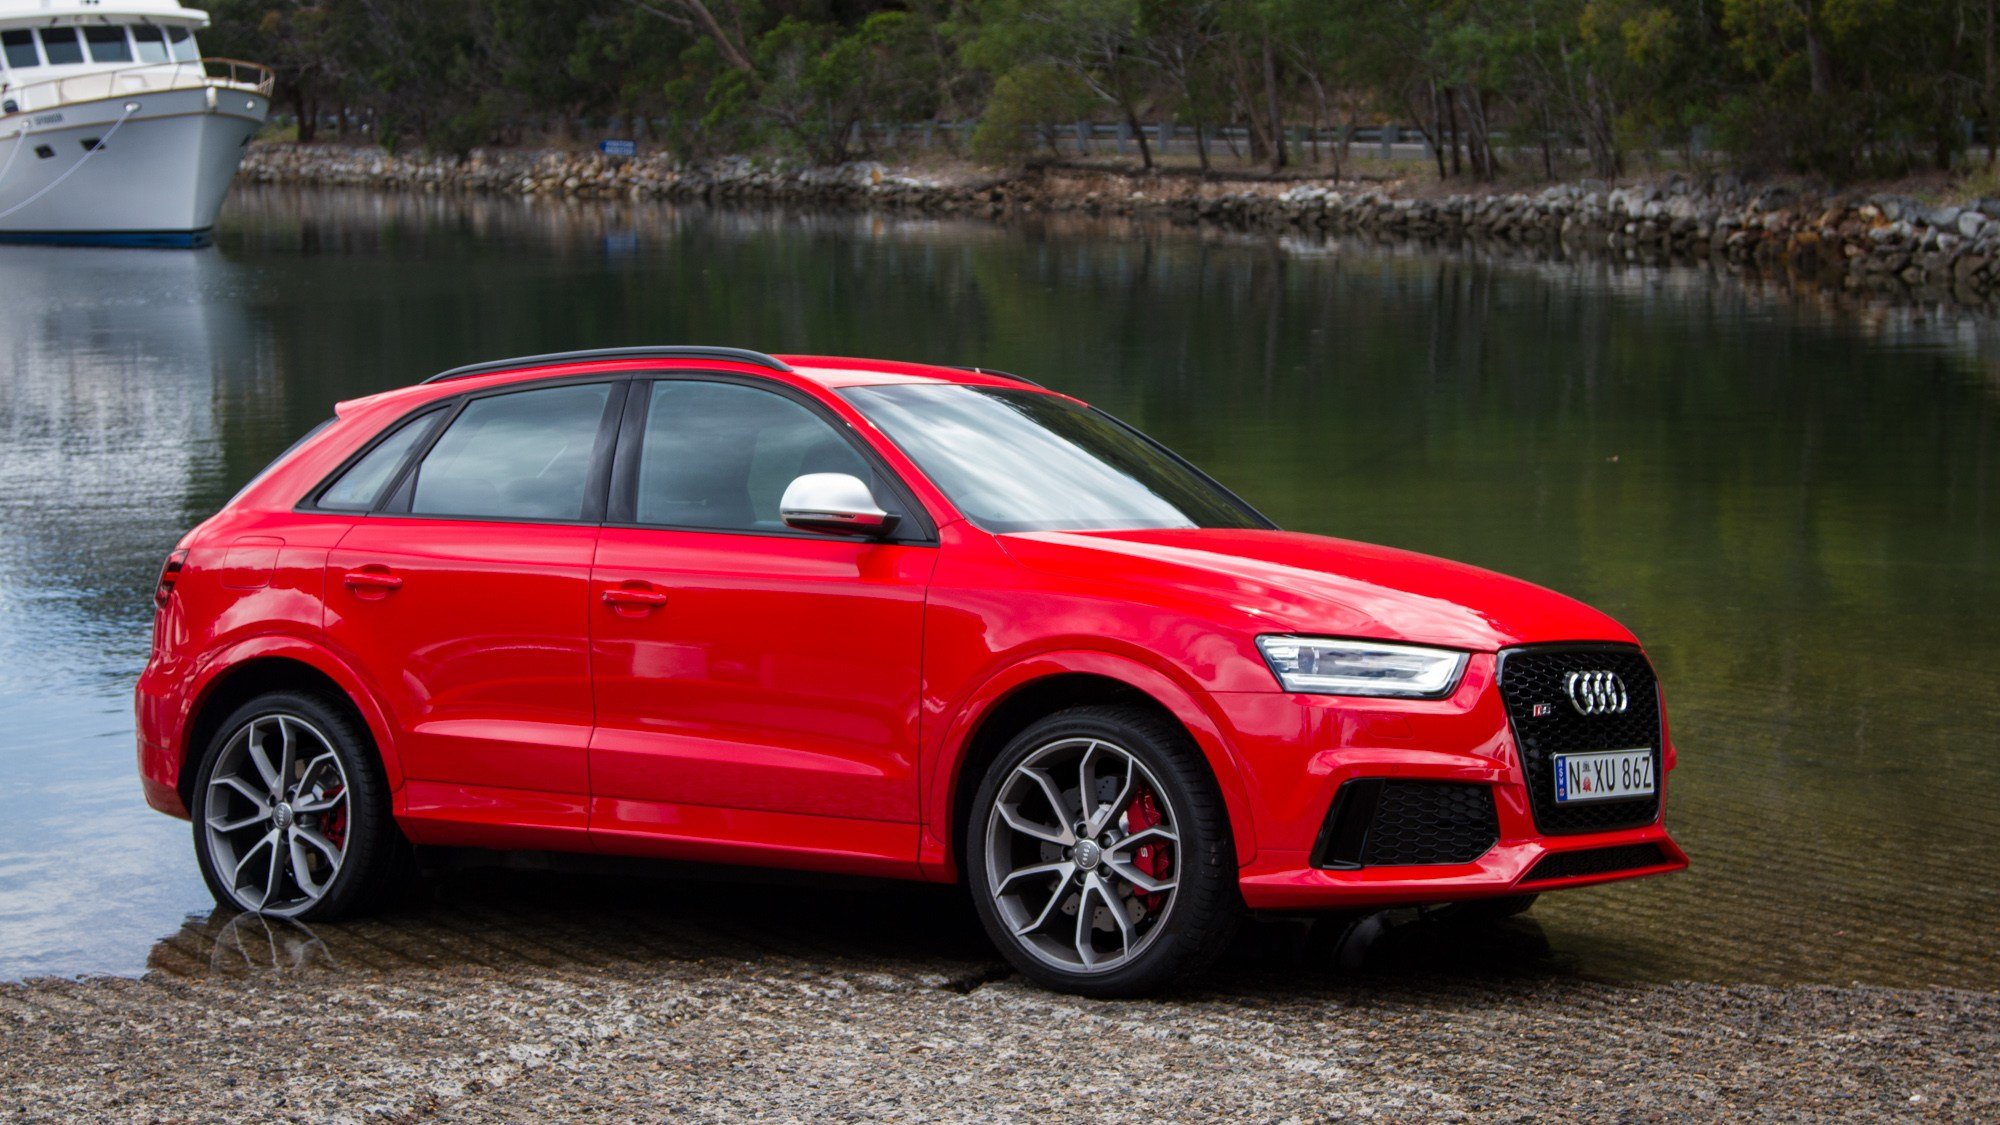 Latest Audi Rsq3 V Mercedes Benz Gla45 Amg Comparison Review Free Download